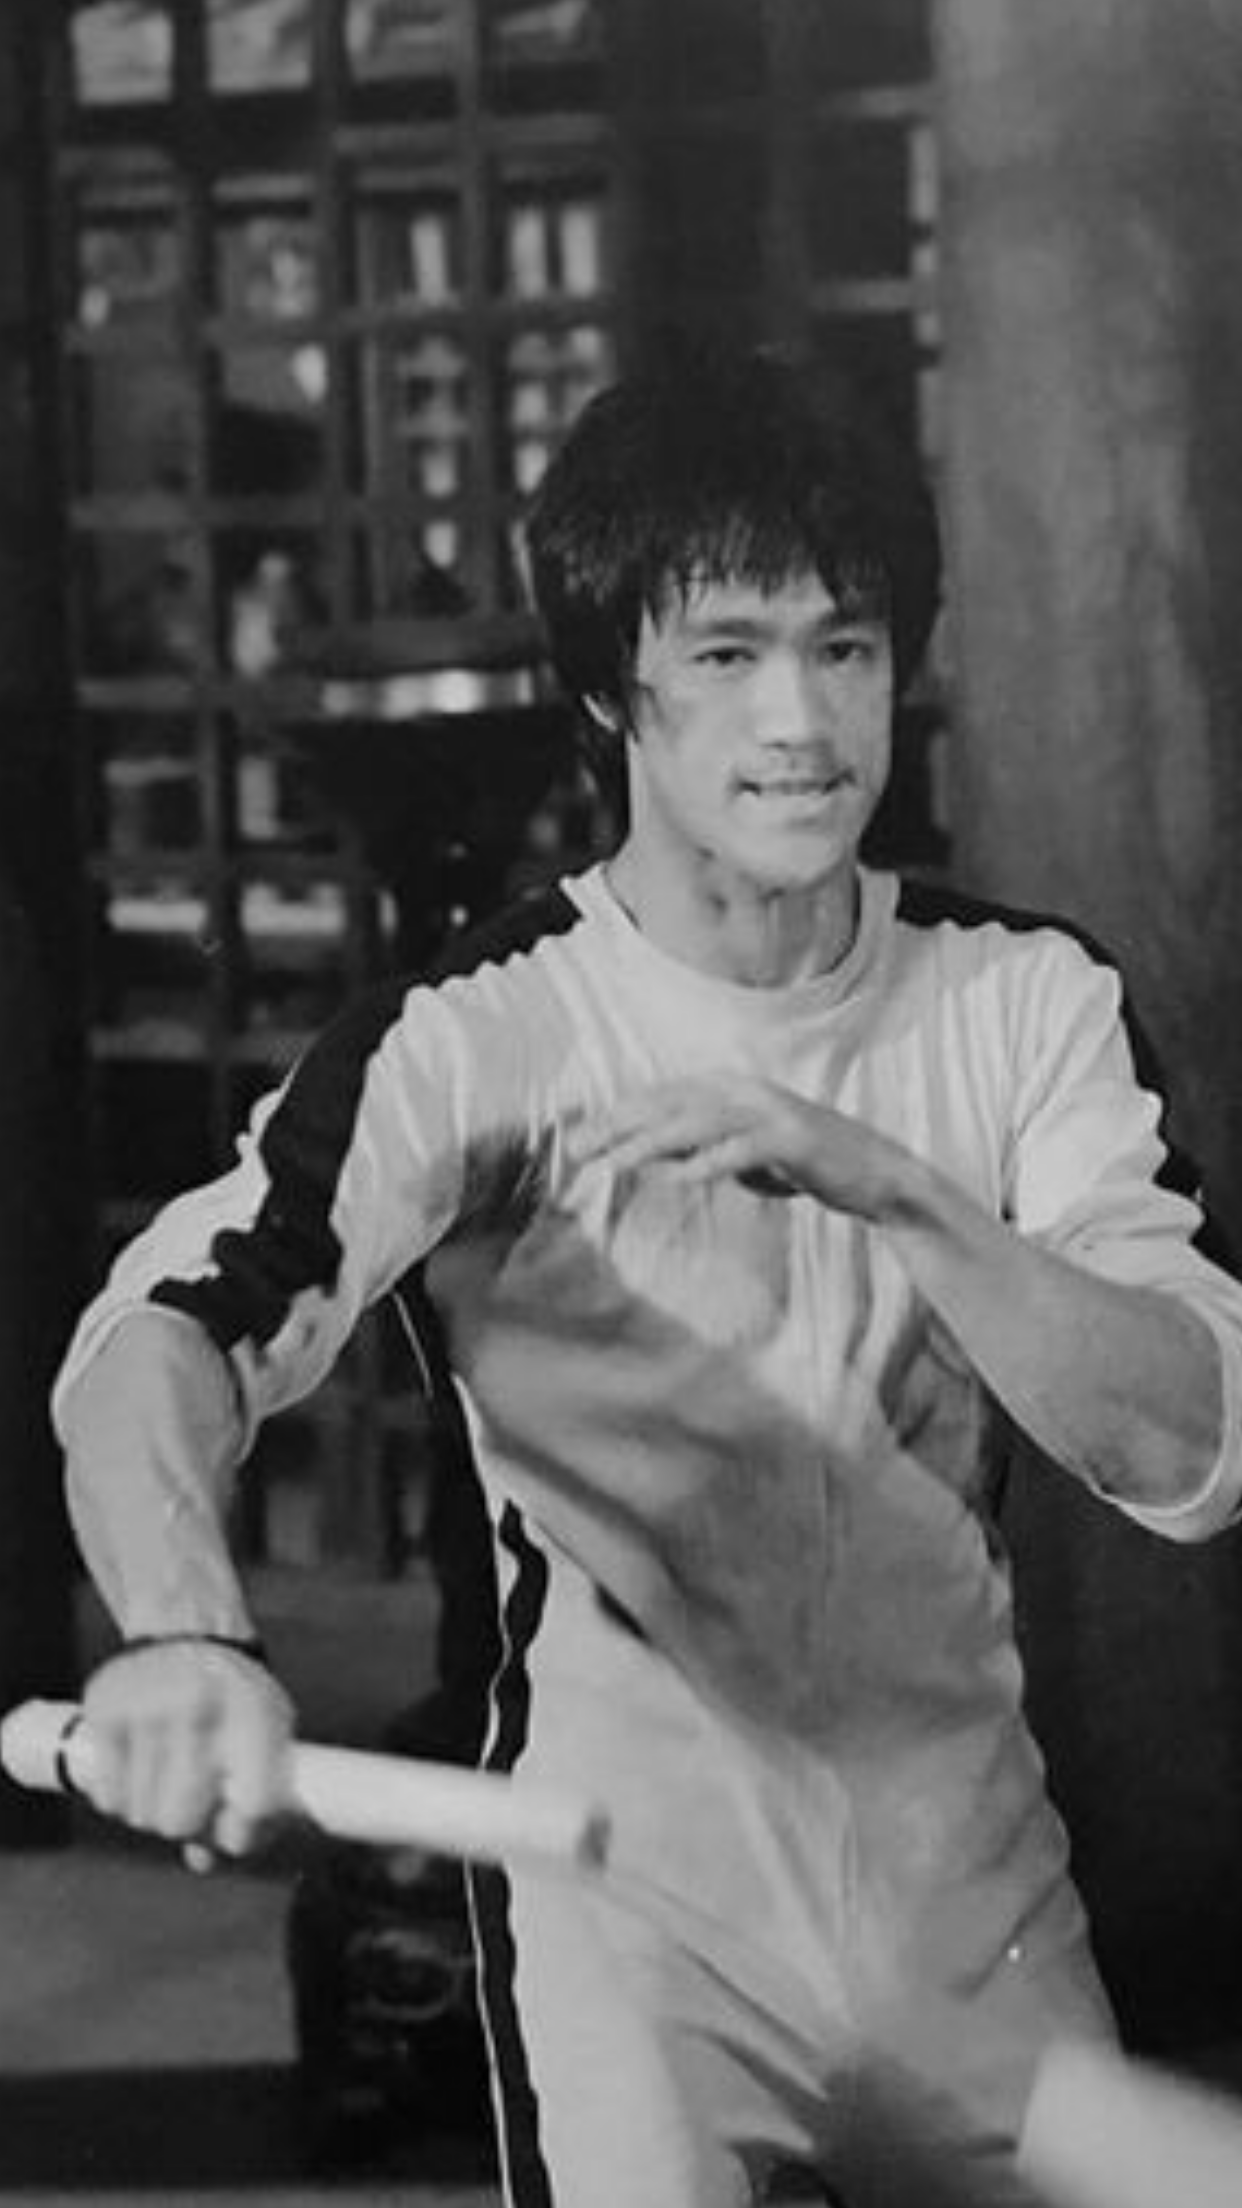 Pin by Nel Djny on Game of death (1972) in 2019 | Bruce ...